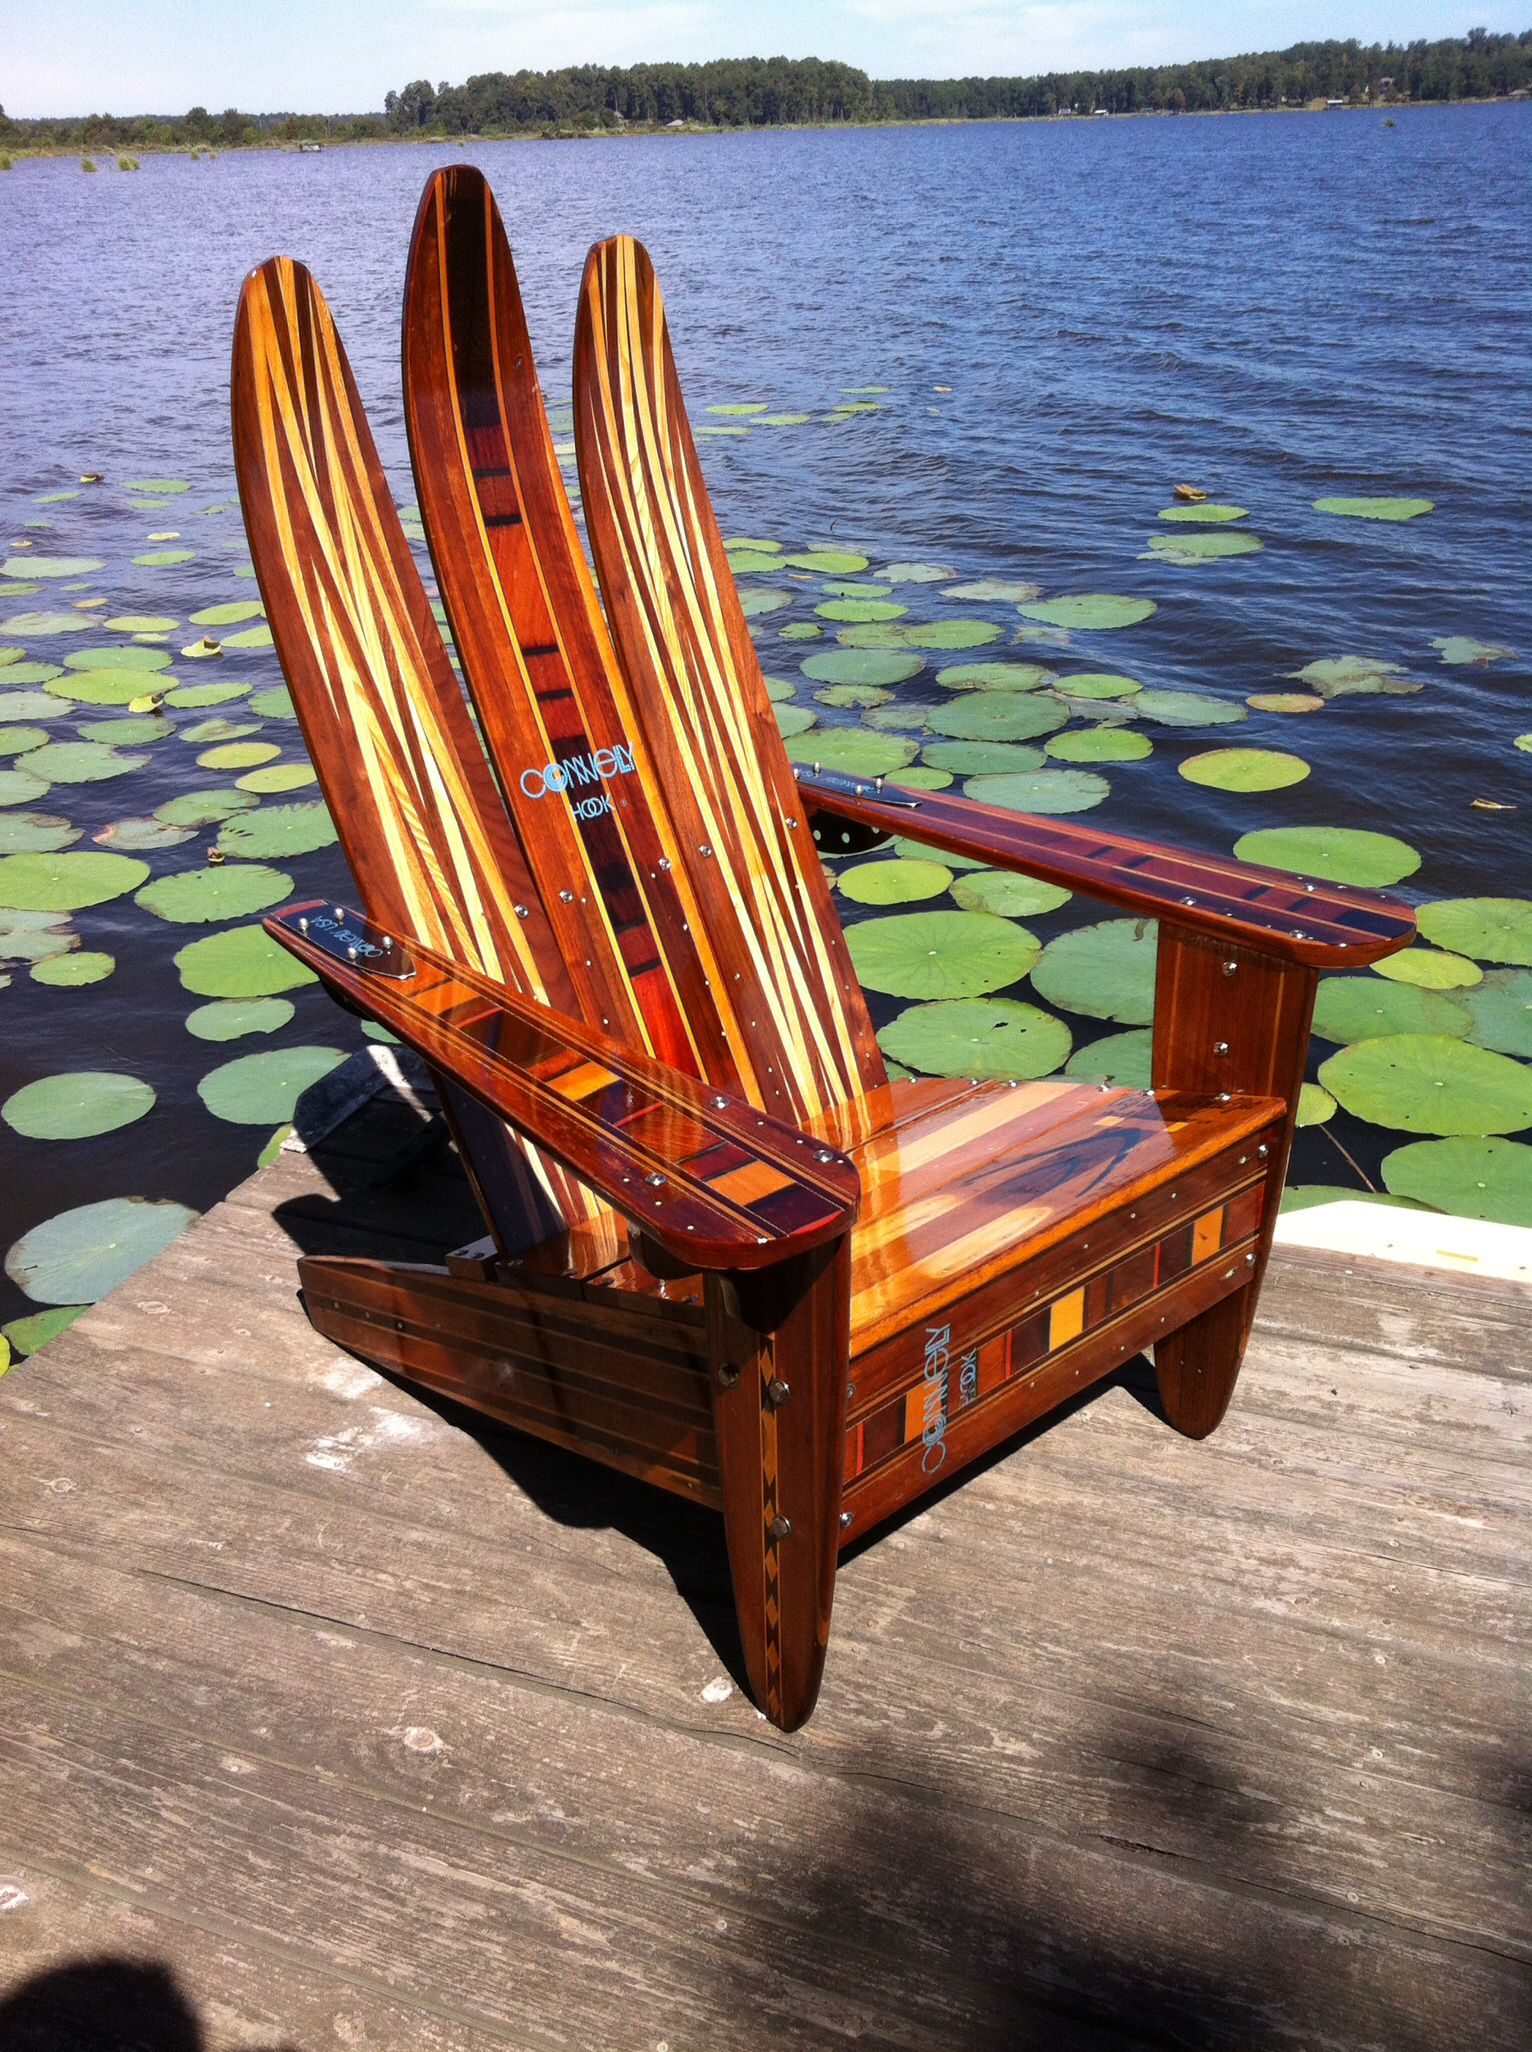 Adirondack chair made of vintage wooden water skis